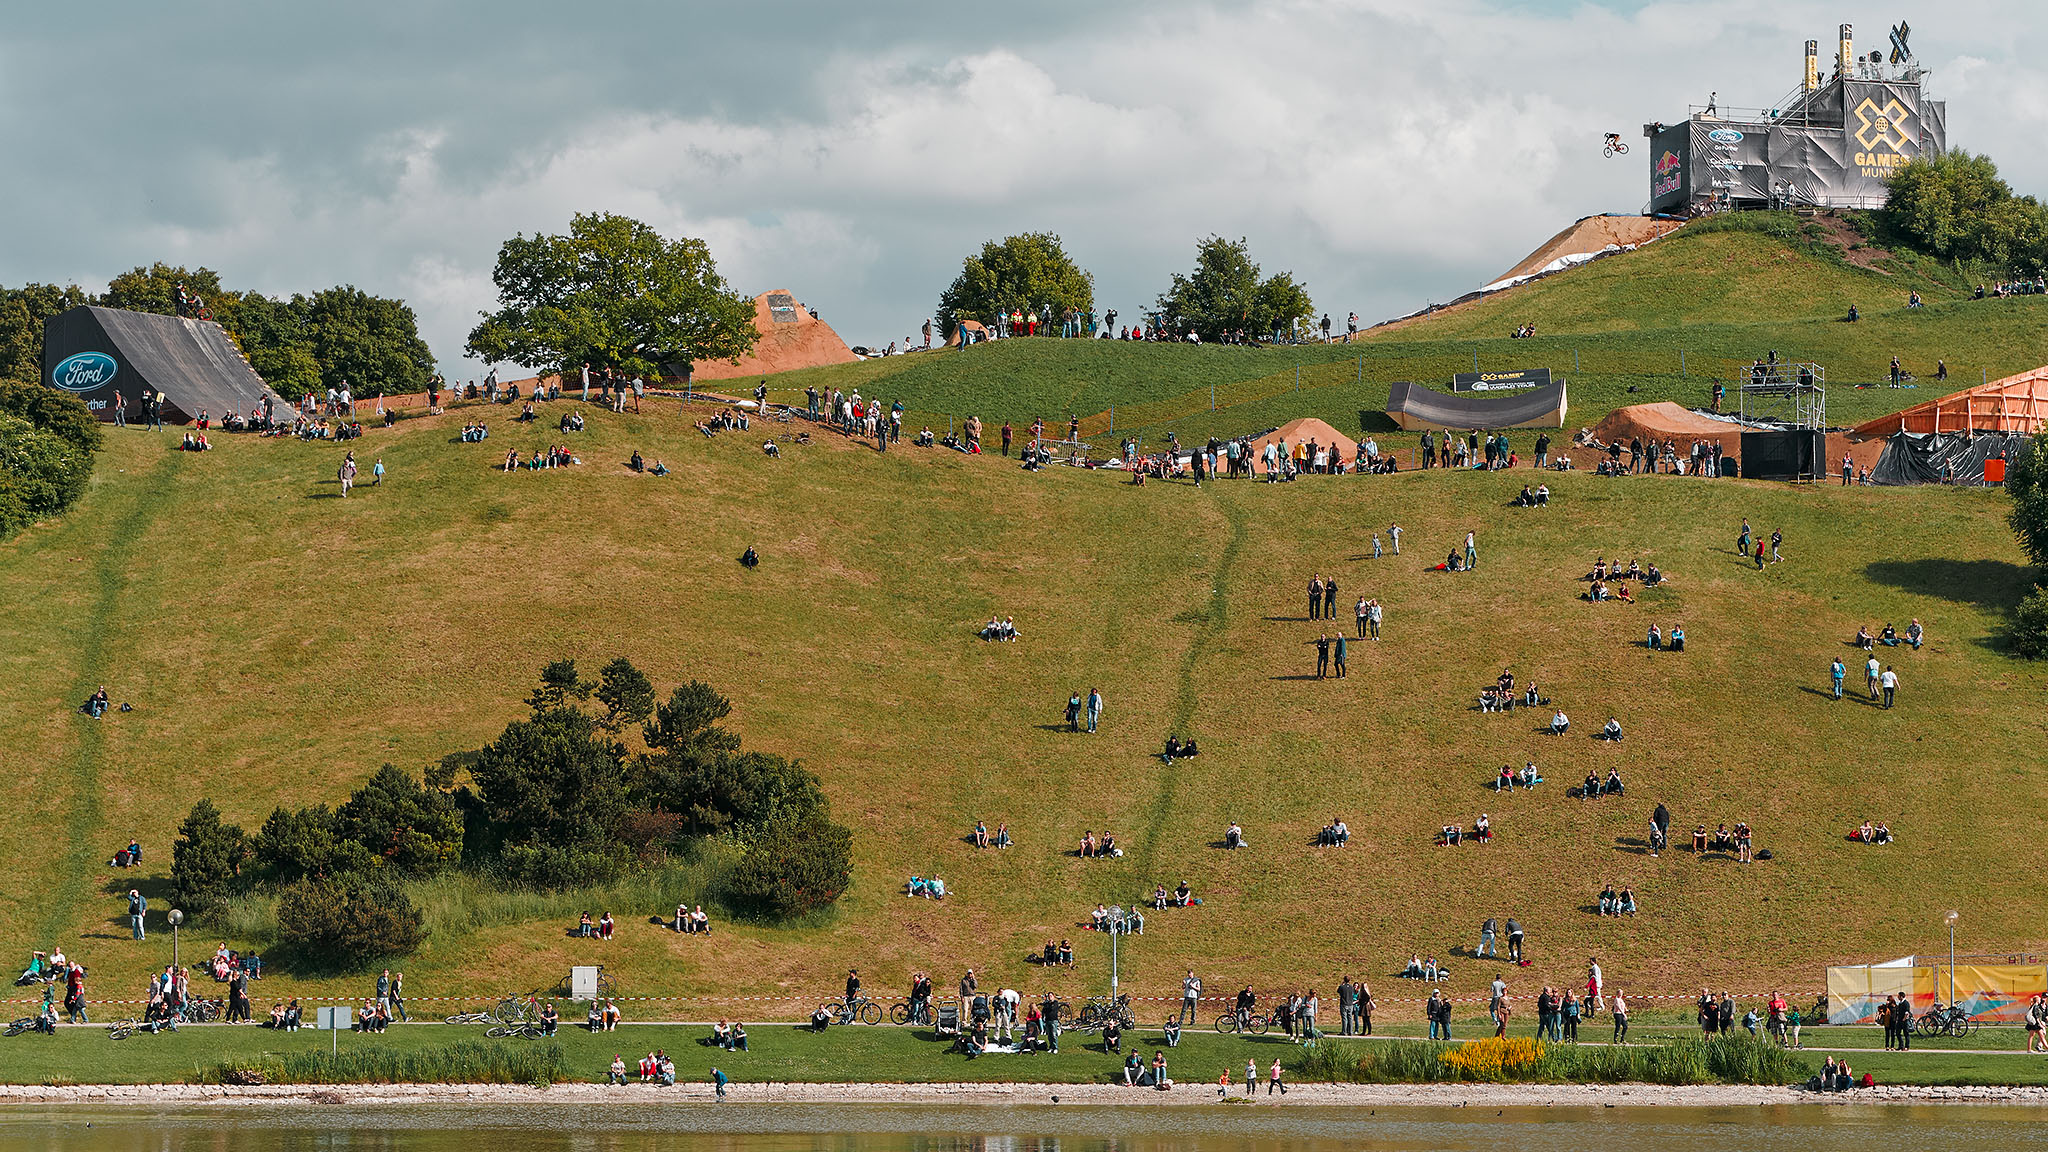 pSpectators hang in the sun on the Olympic Hill at X Games Munich on Friday as the world's best mountain bikers practice for the first-ever Mountain Bike Slopestyle contest in X Games' history./p